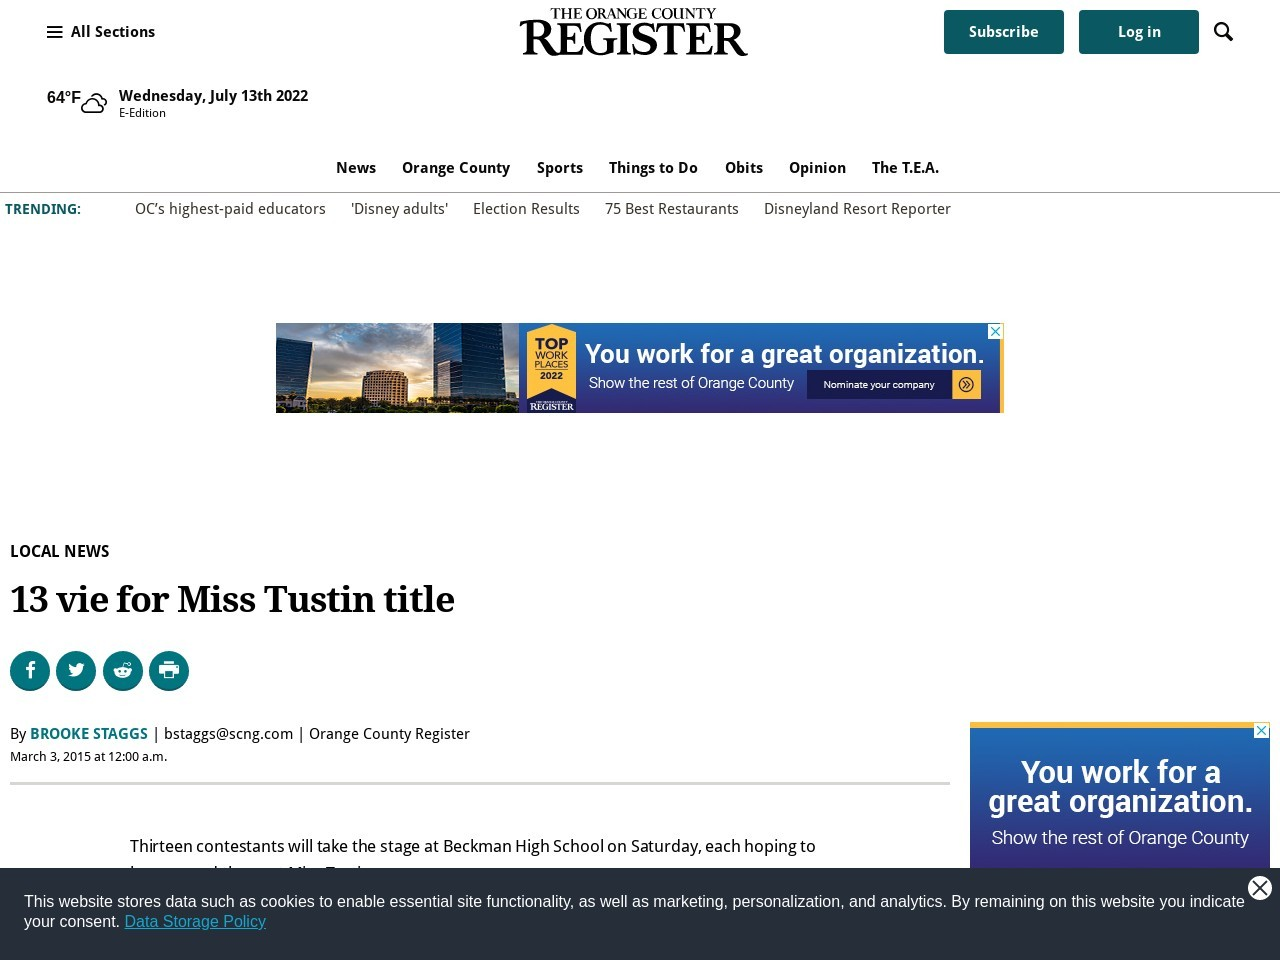 13 vie for Miss Tustin title